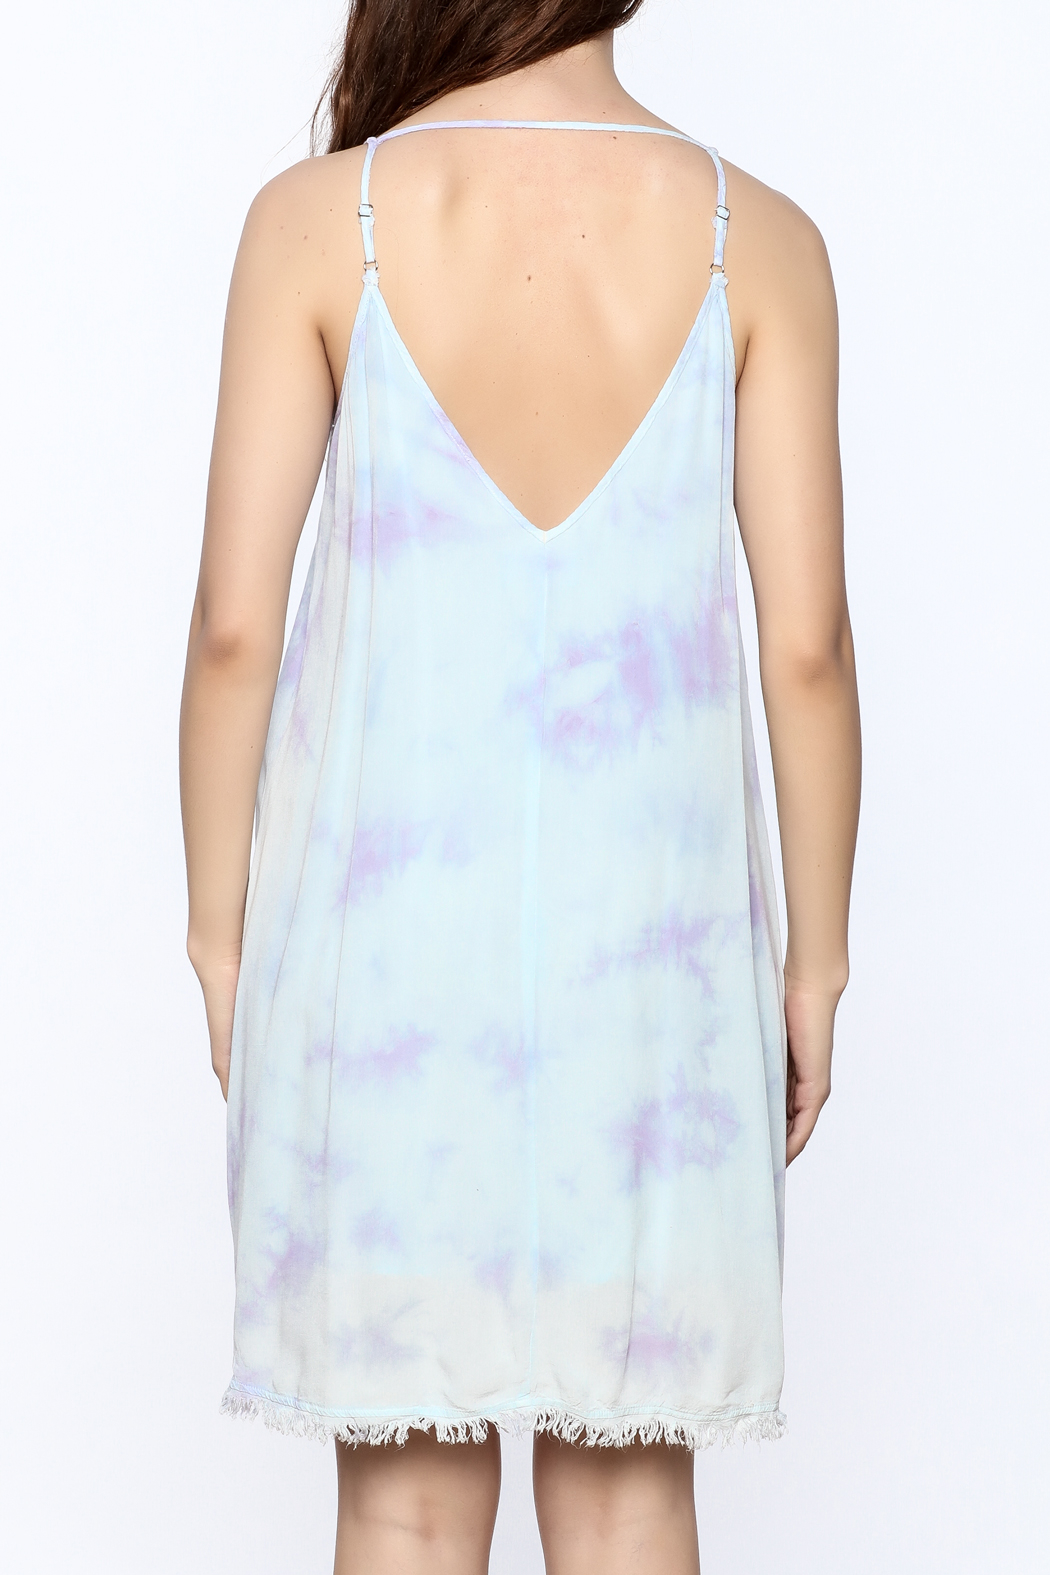 Mustard Seed Lilac Tie Dye Dress - Back Cropped Image